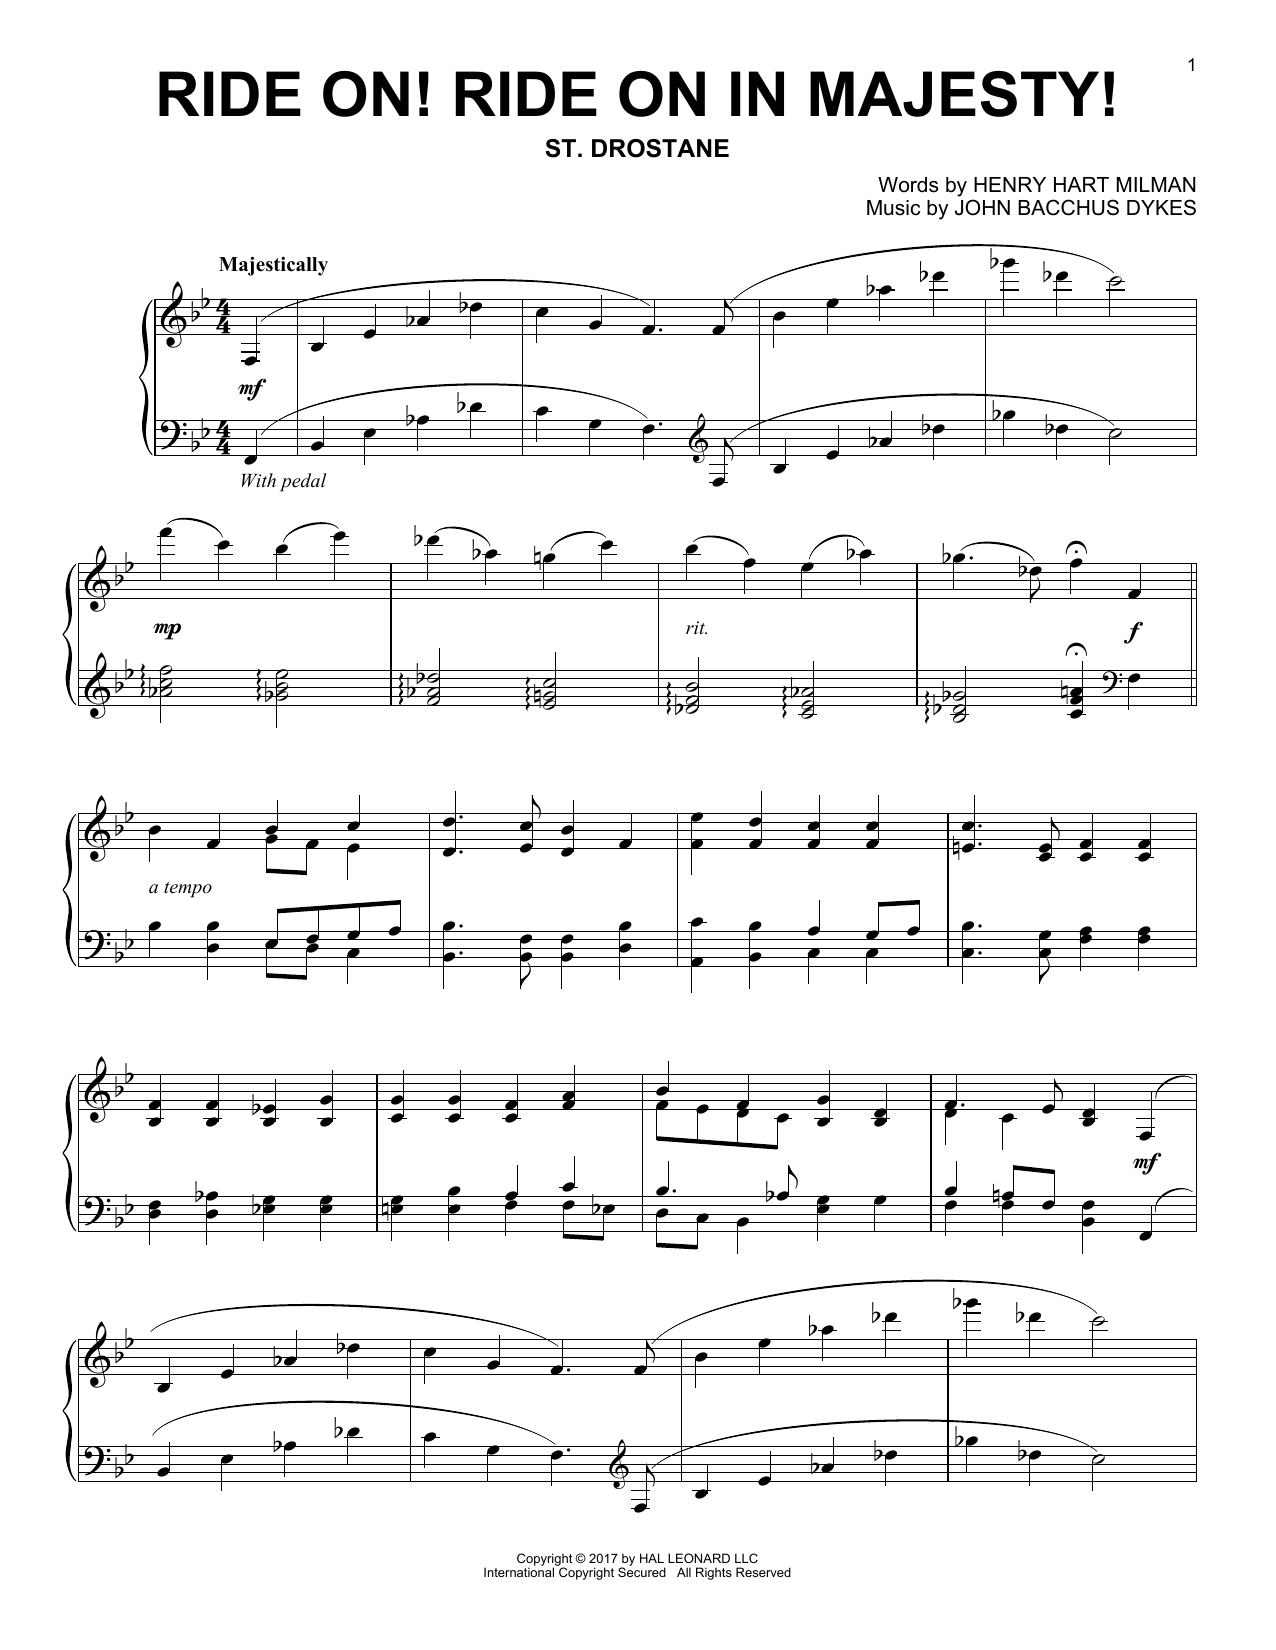 John Bacchus Dykes Ride On! Ride On In Majesty! sheet music notes and chords. Download Printable PDF.